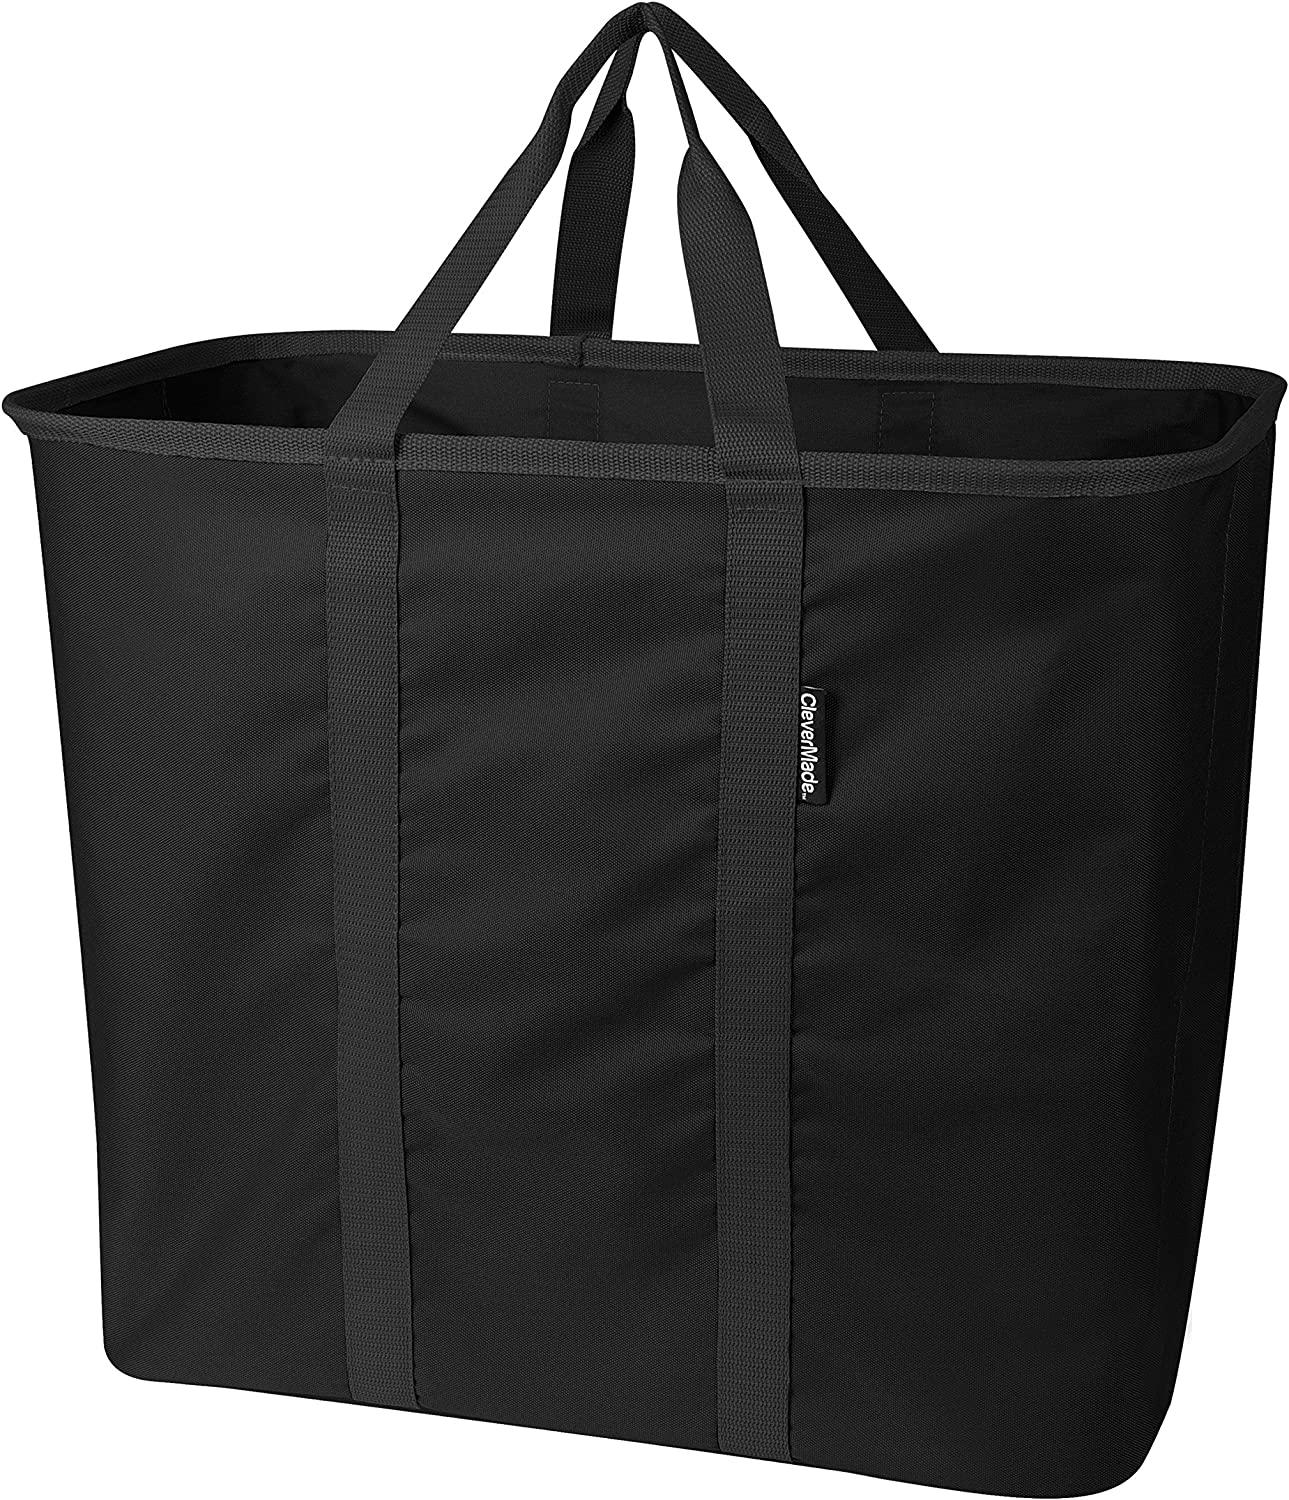 CleverMade SnapBasket LaundryCaddy/CarryAll XL Pop-Up Hamper: Collapsible Laundry Basket/Tote Bag, Black/Black